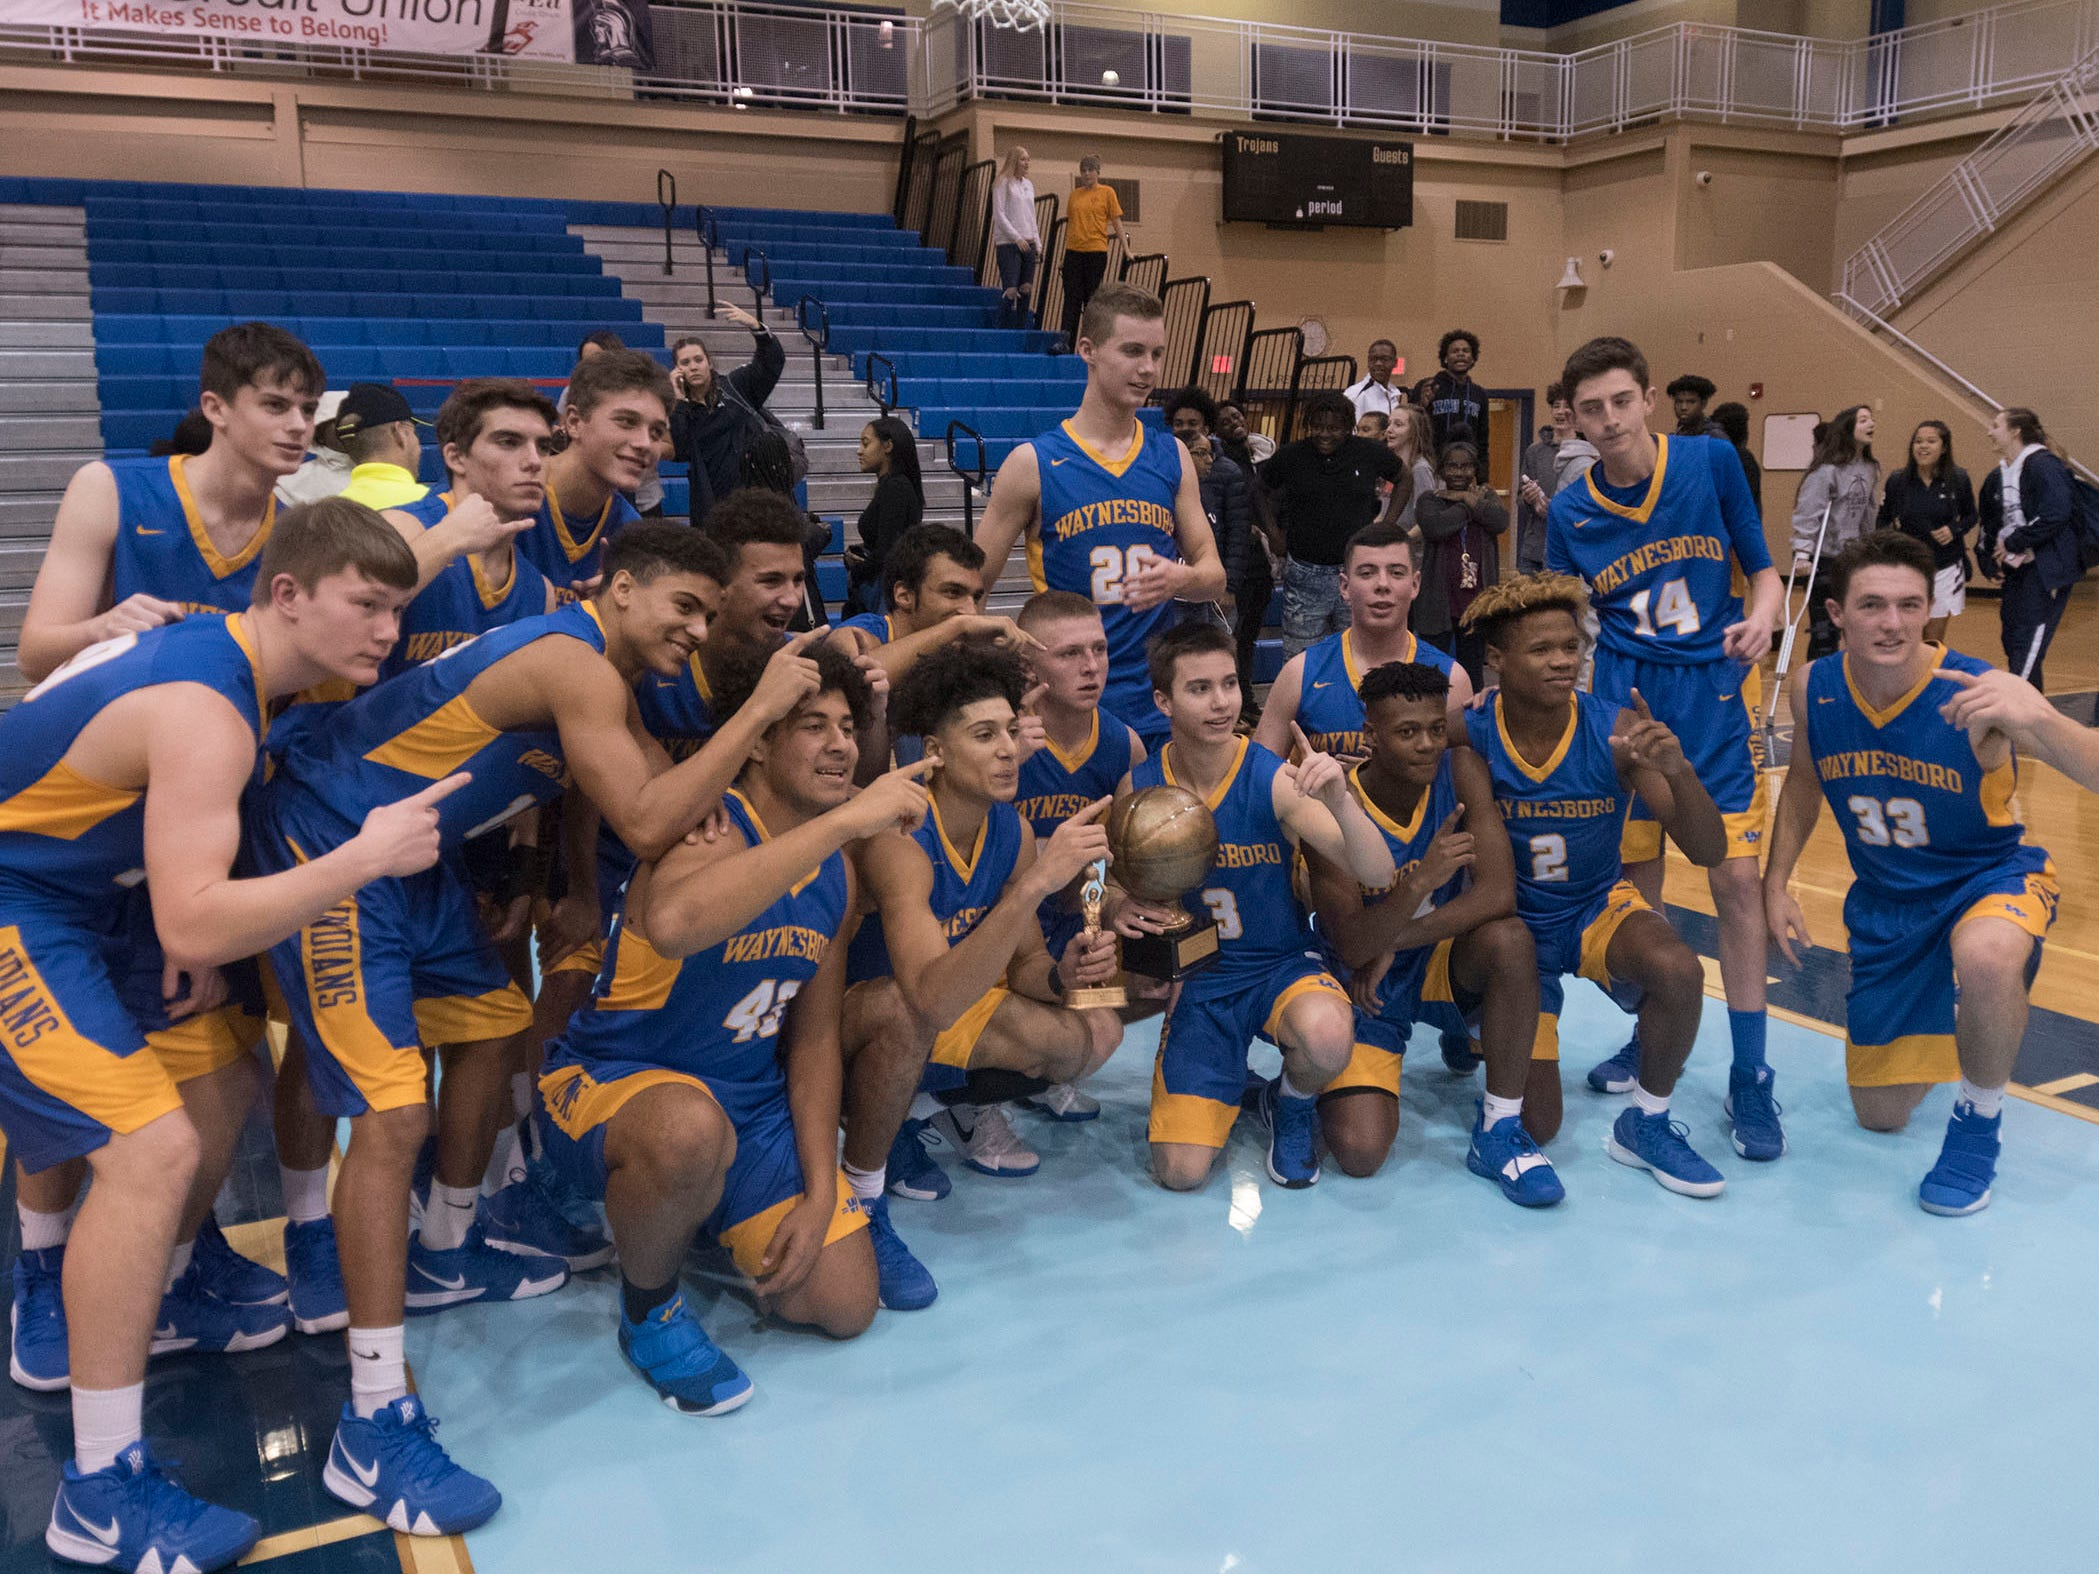 Waynesboro teammates pose for a group shot after defeating Chambersburg 42-39. Chambersburg played Waynesboro during the finals at Franklin County Tip-Off Tournament, Saturday, Dec. 8, 2018.